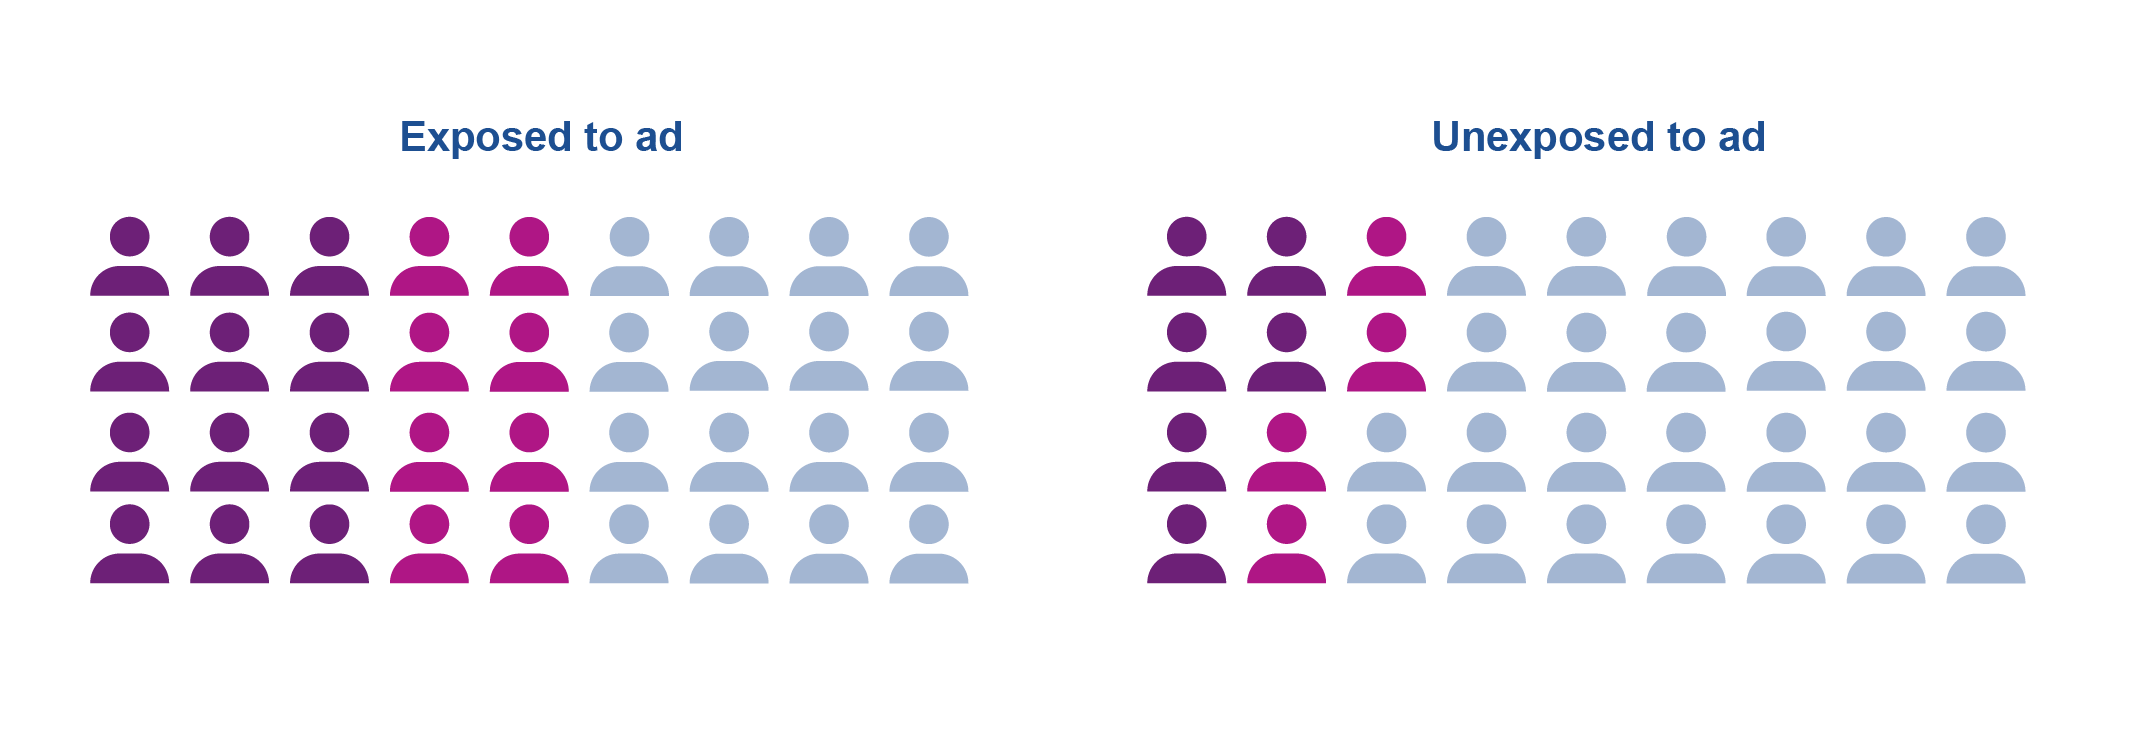 Graphic indicating 2 populations and their ad exposure frequency